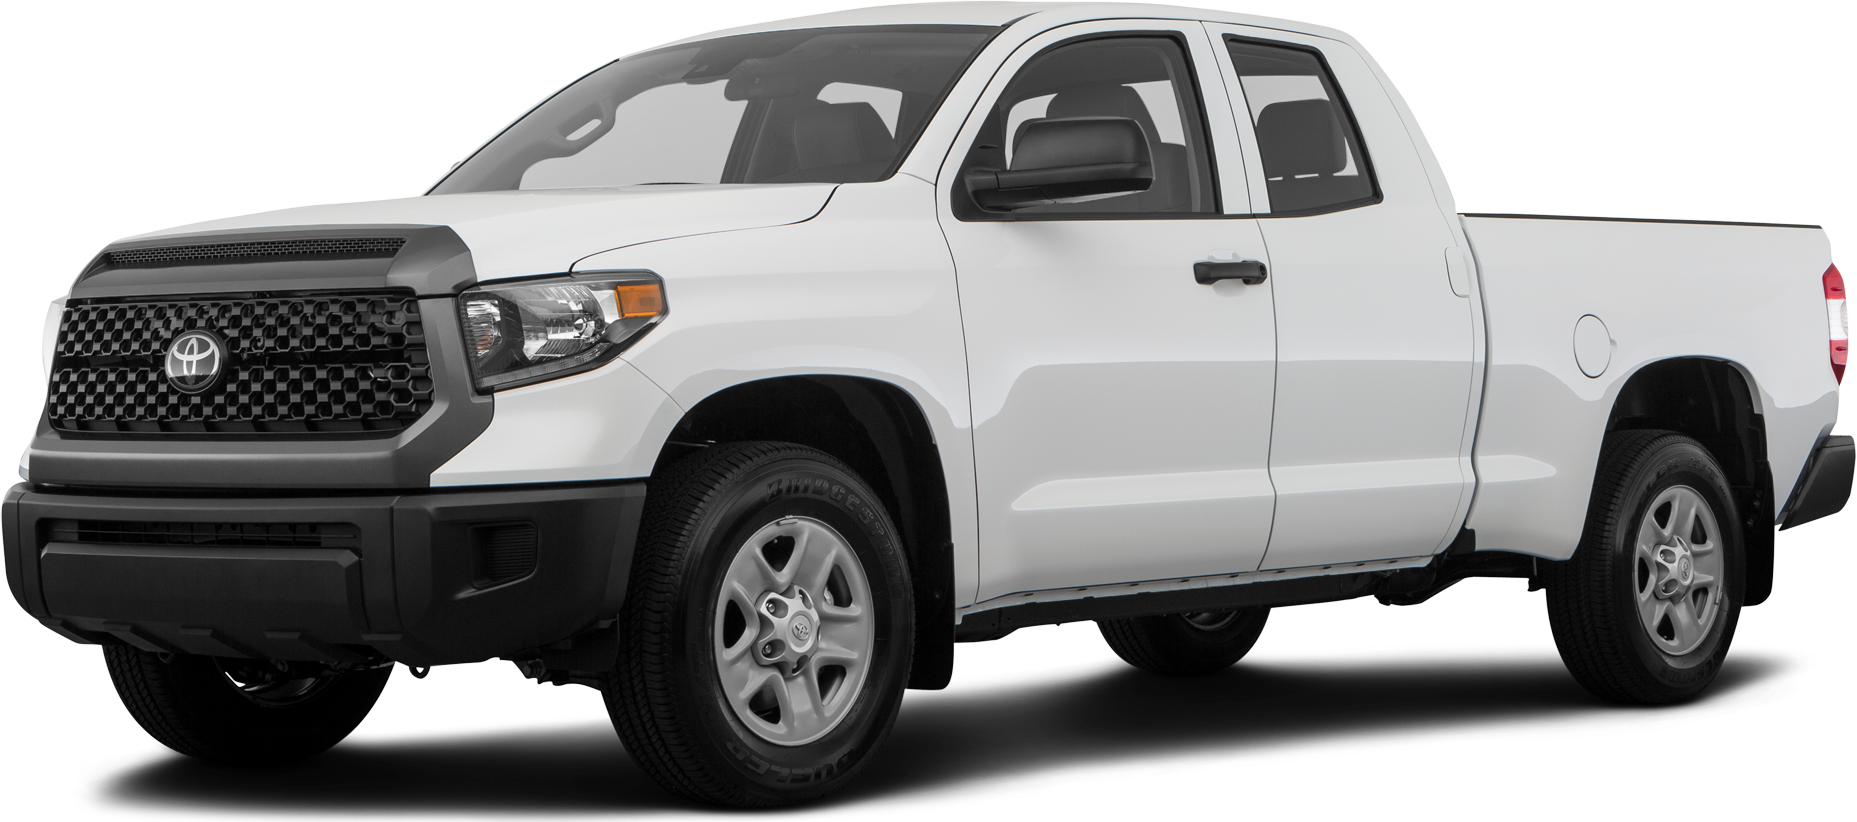 2018 Toyota Tundra Values Cars For Sale Kelley Blue Book